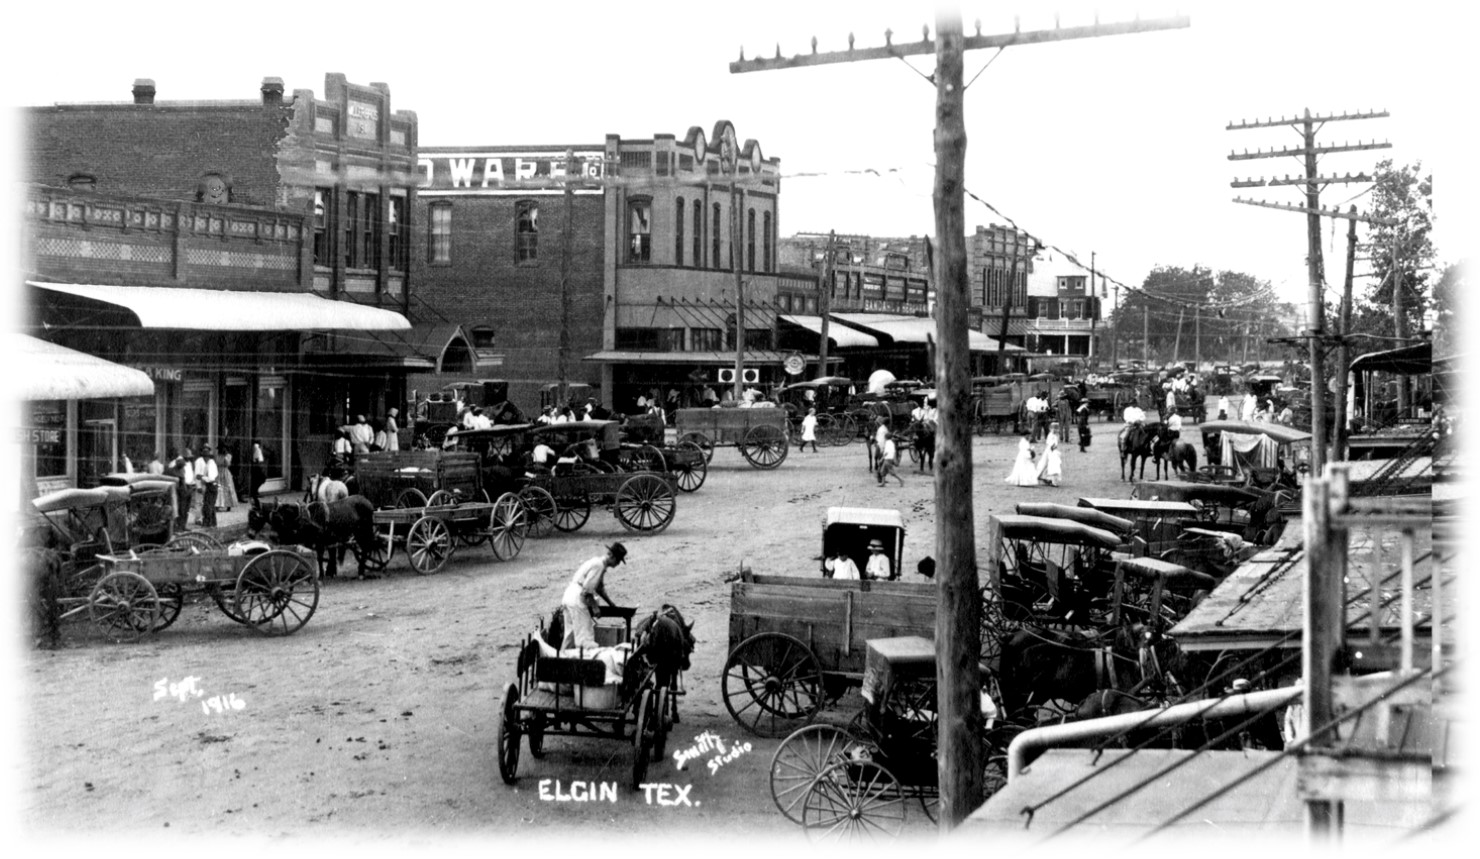 Downtown - Whitten Collection 1916